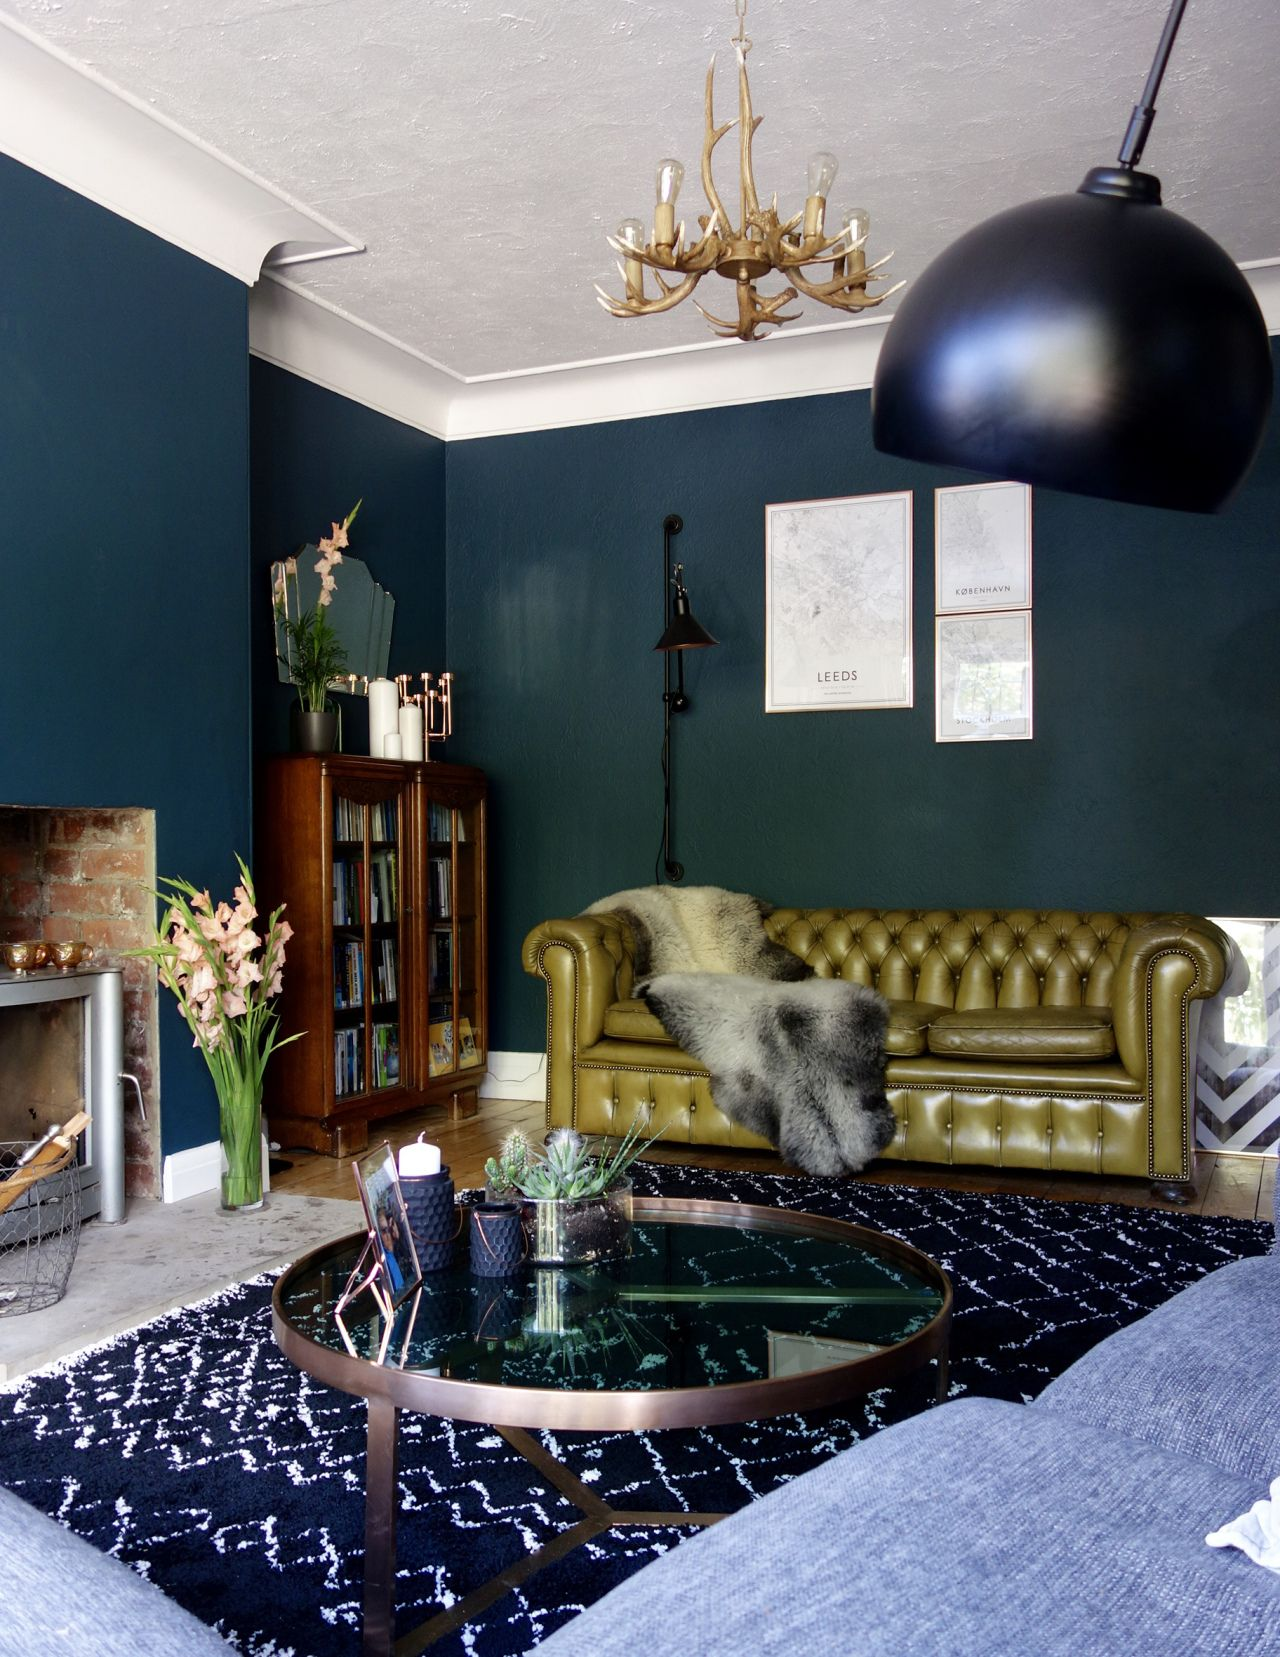 Interior Design Living Room Uk The Eclectic Living Room Dark Green Walls Vintage And Salvaged